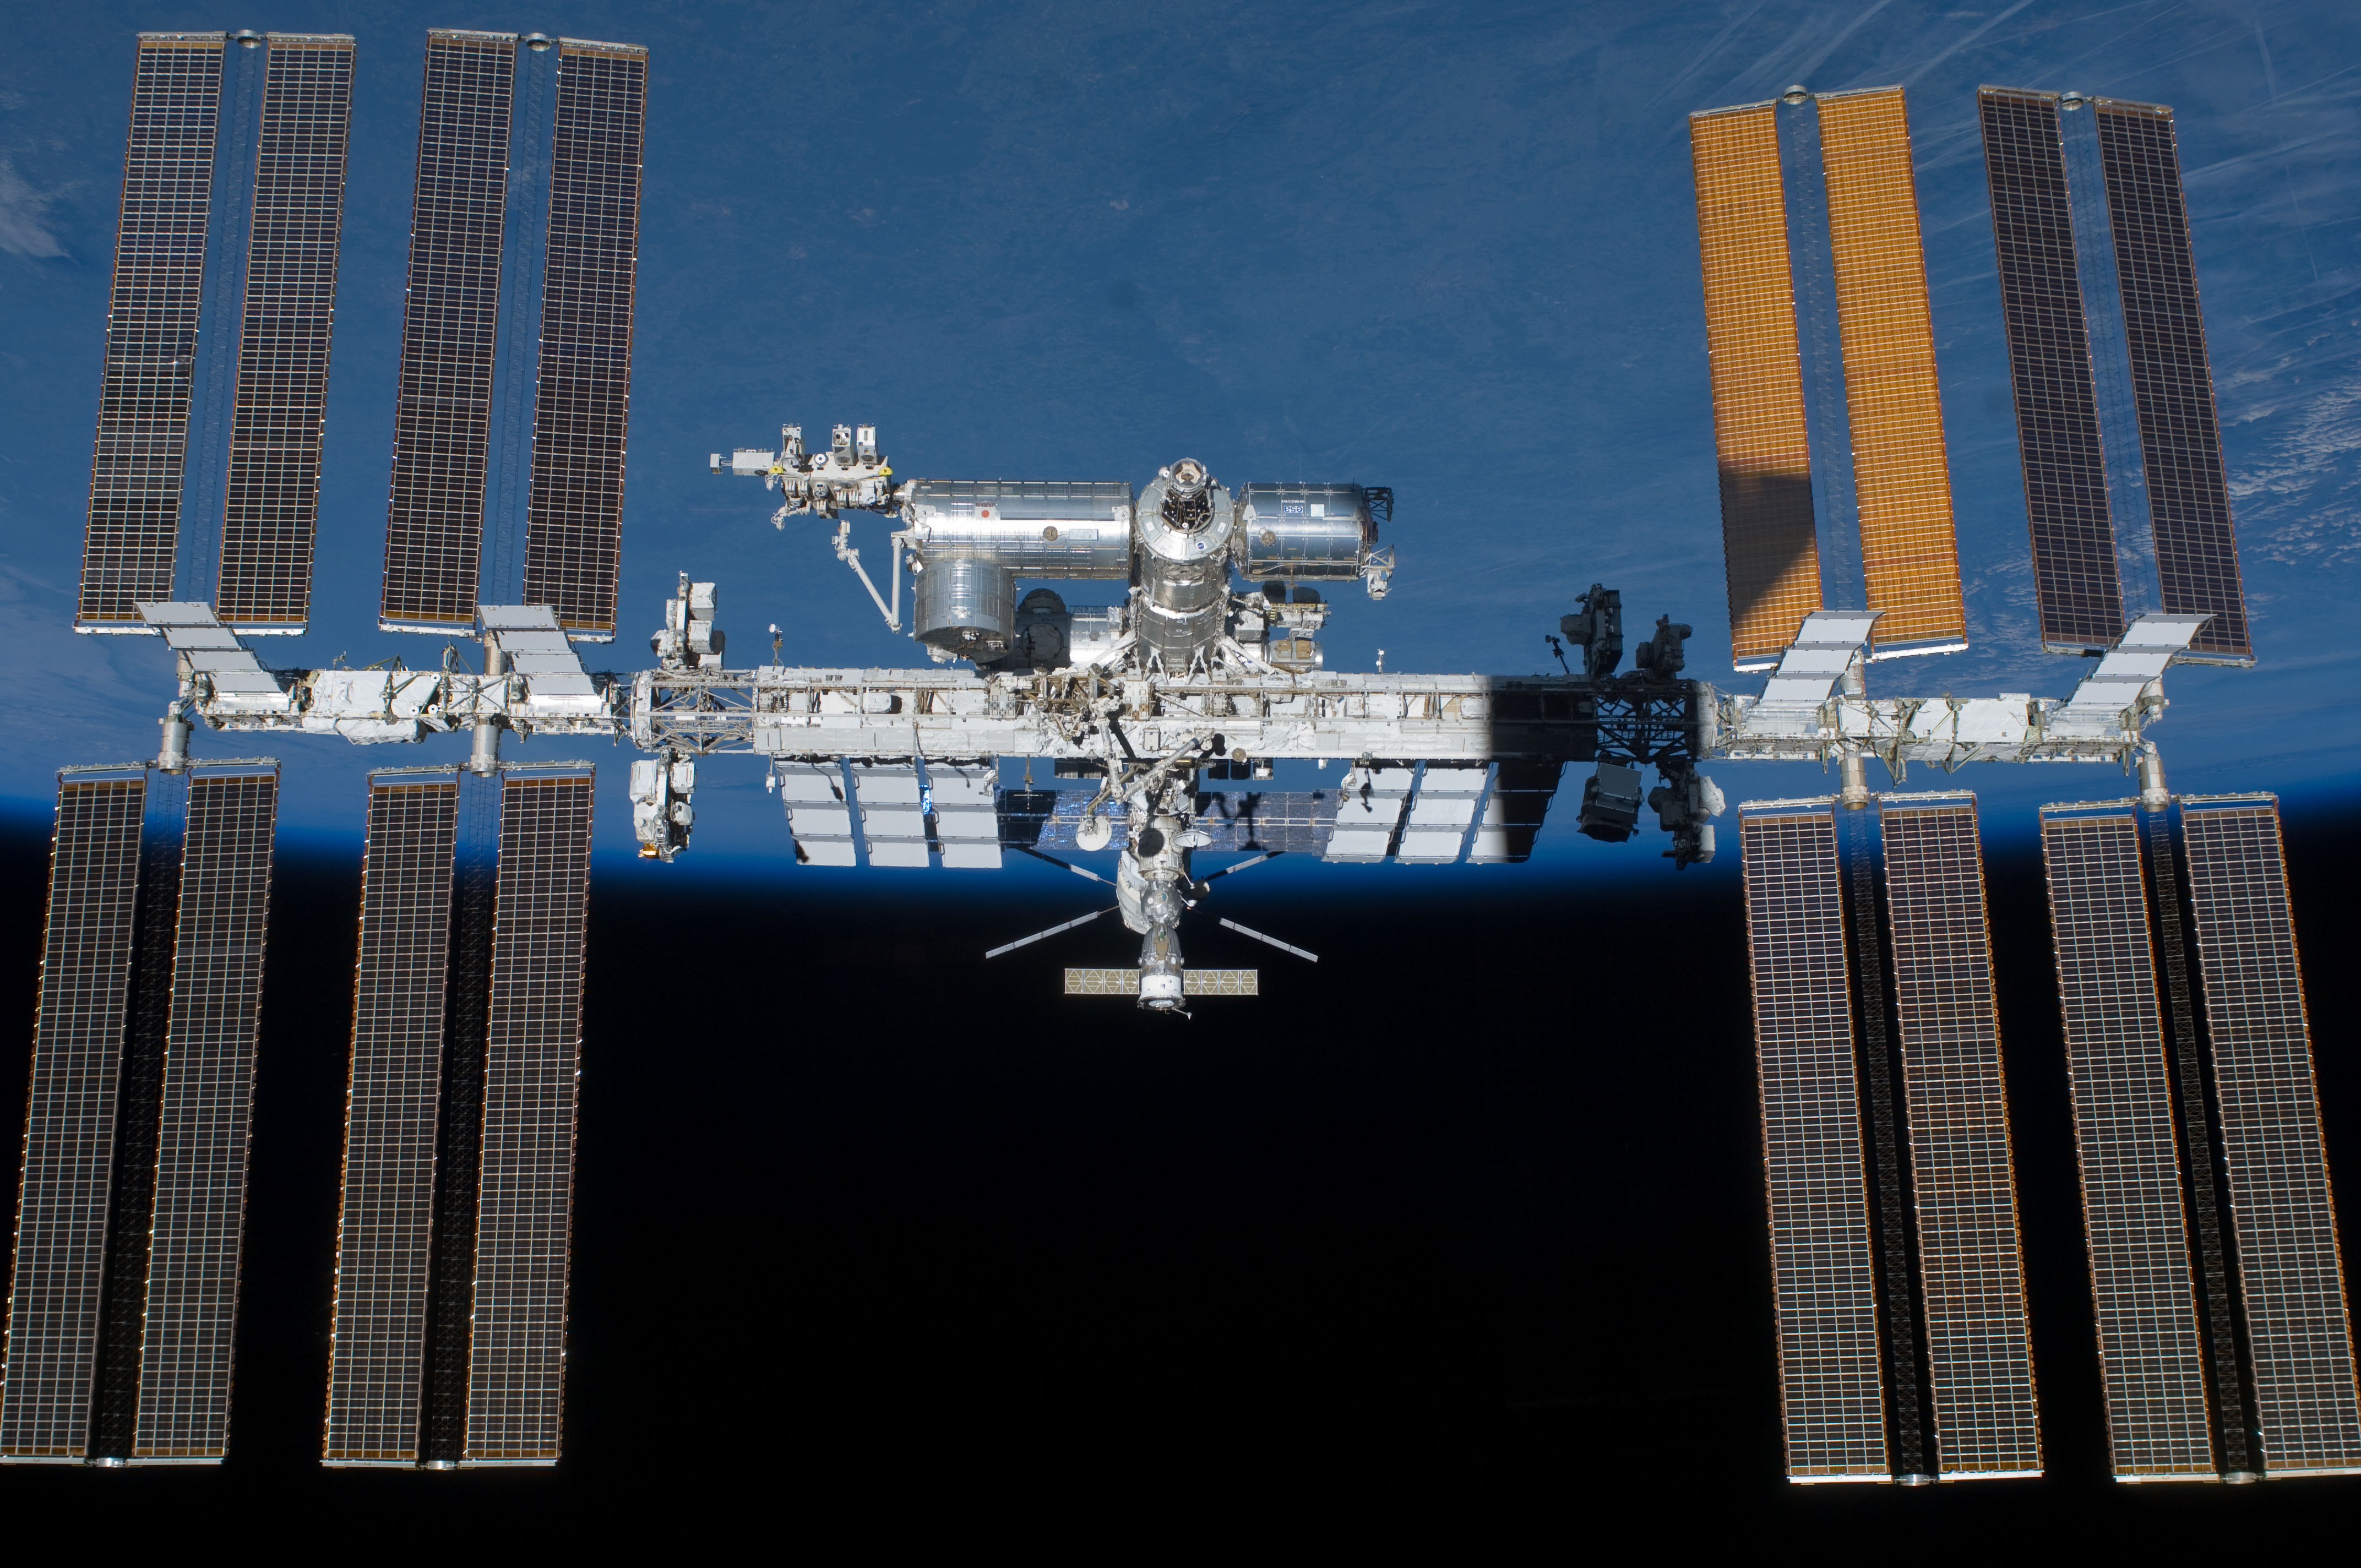 ISS Historical Timeline